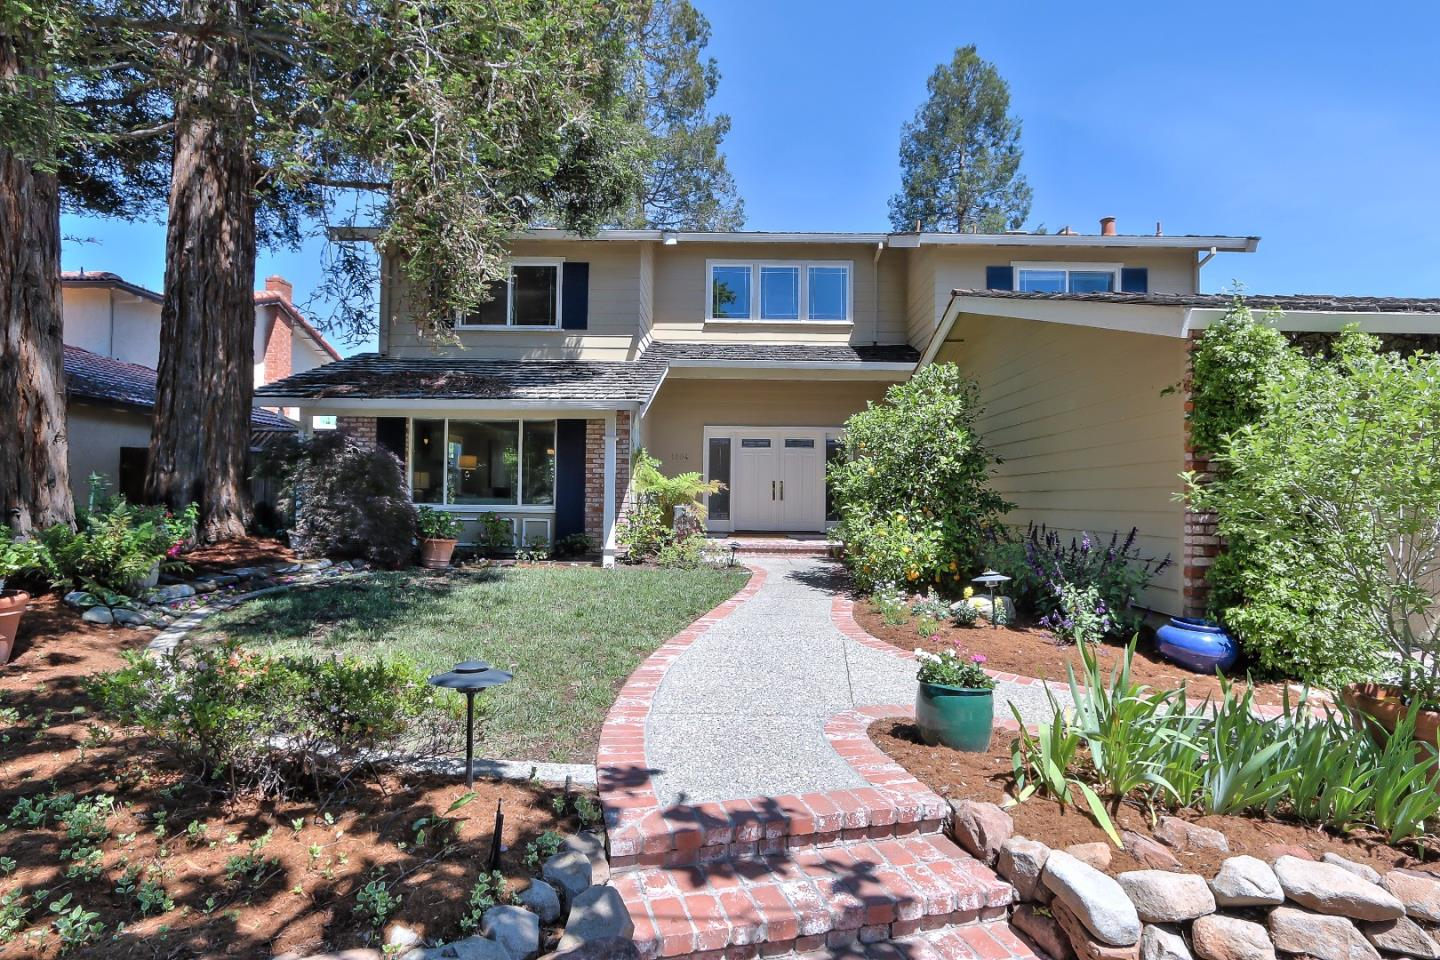 Additional photo for property listing at 1204 Lubich Dr  MOUNTAIN VIEW, CALIFORNIA 94040